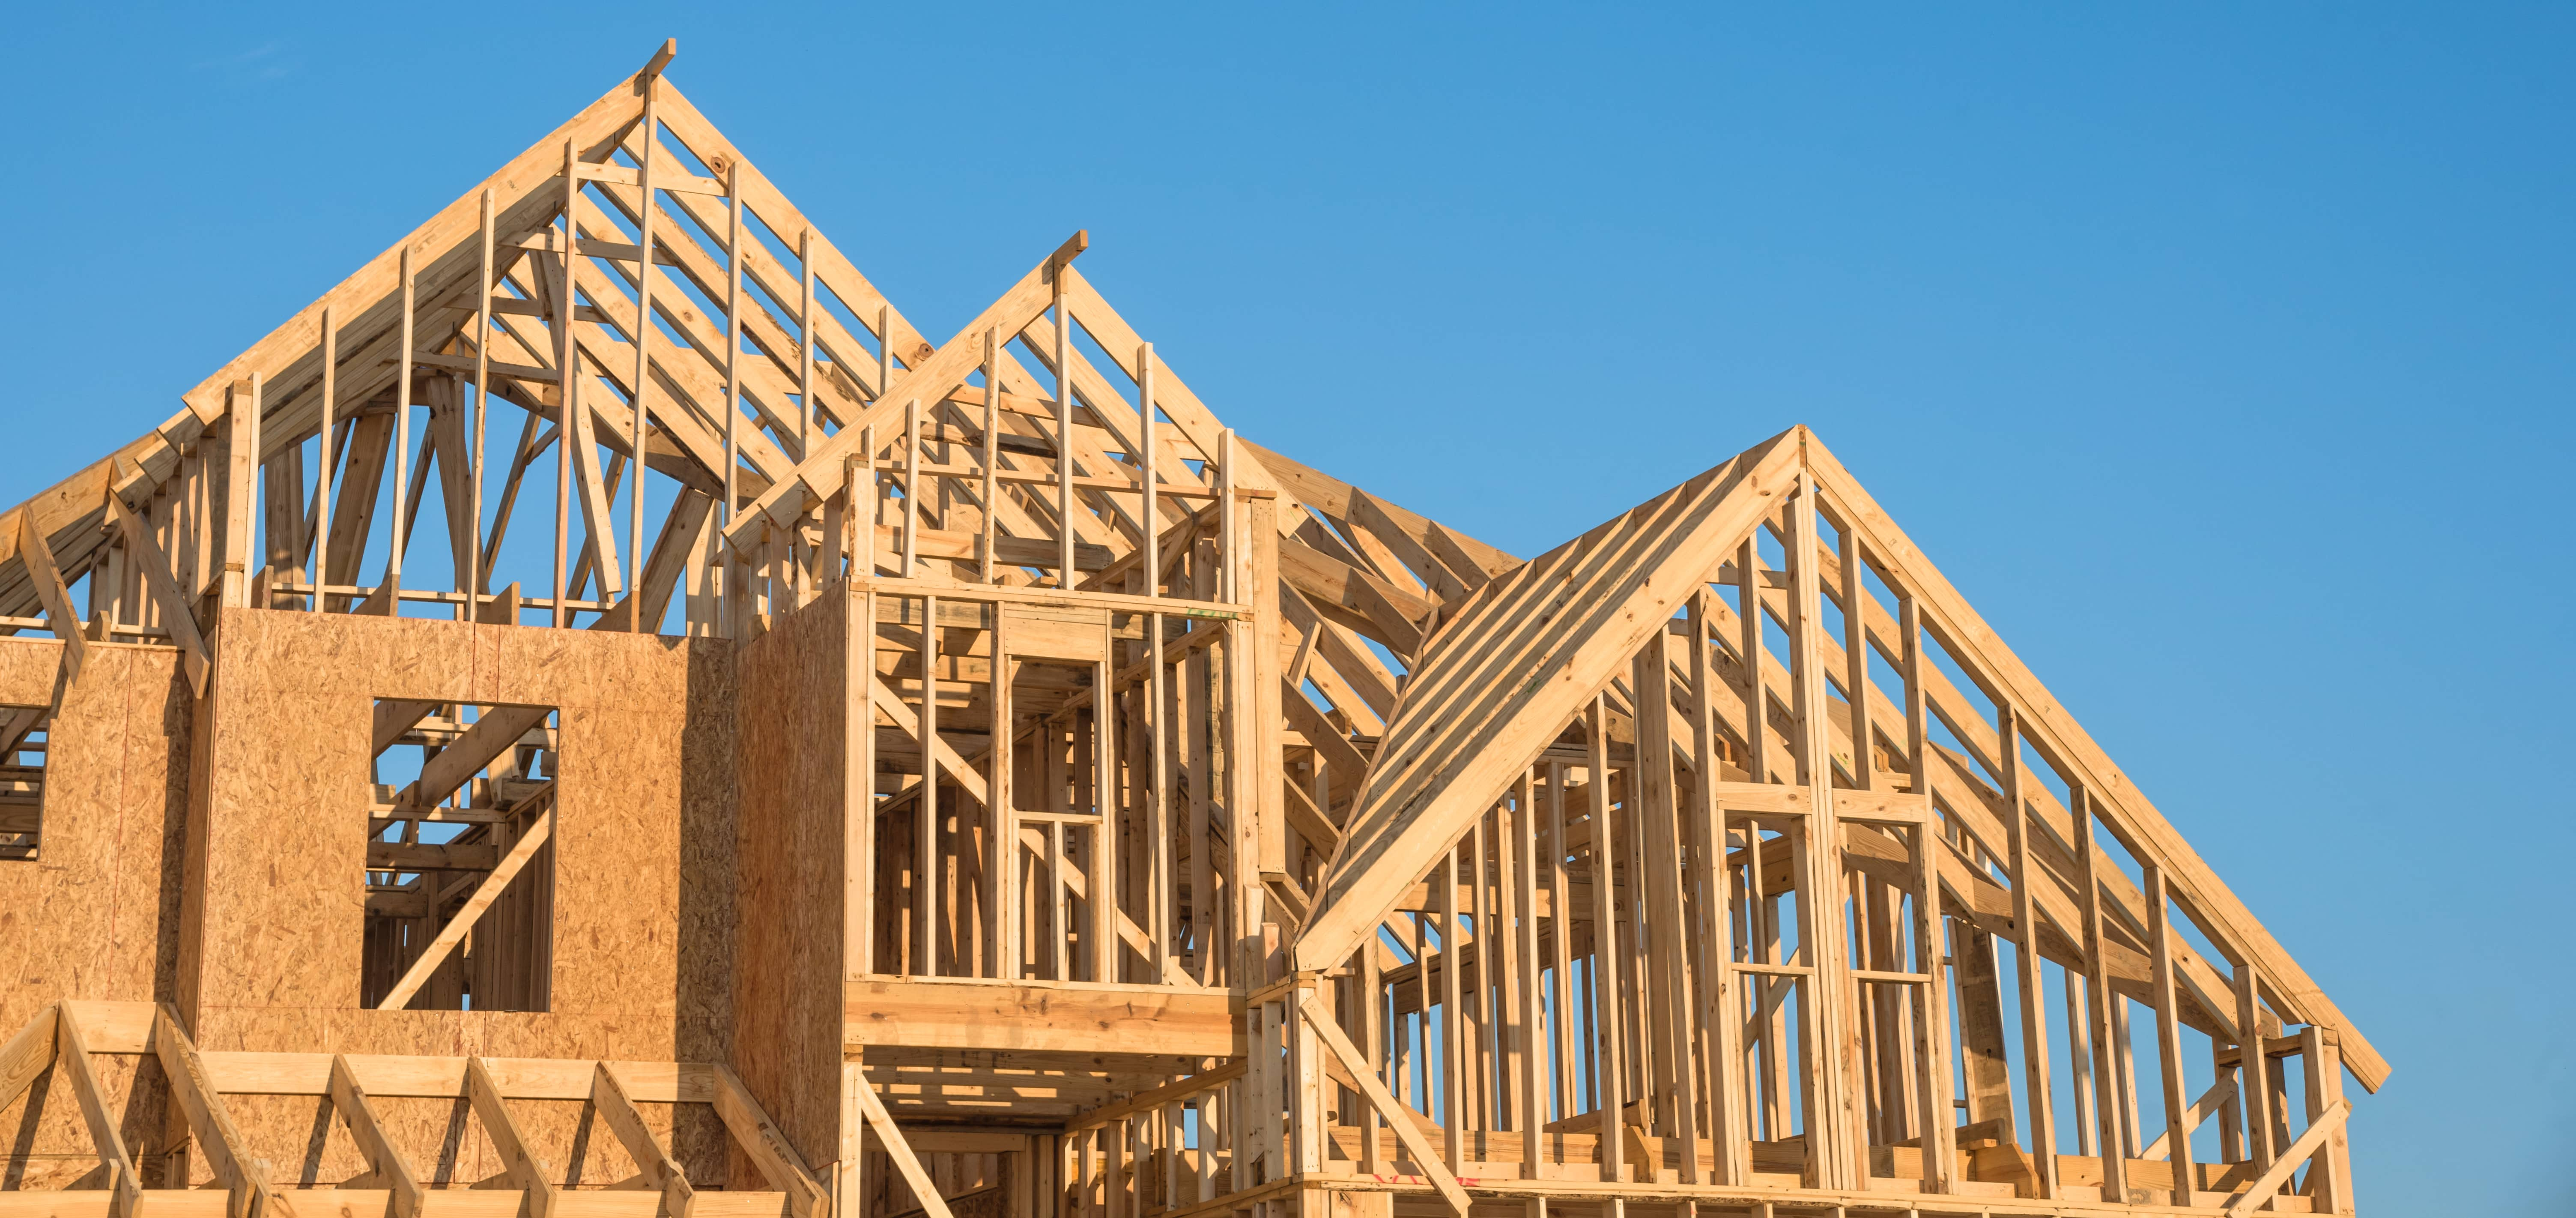 New home construction in northern virginia home builders for Home building contractor